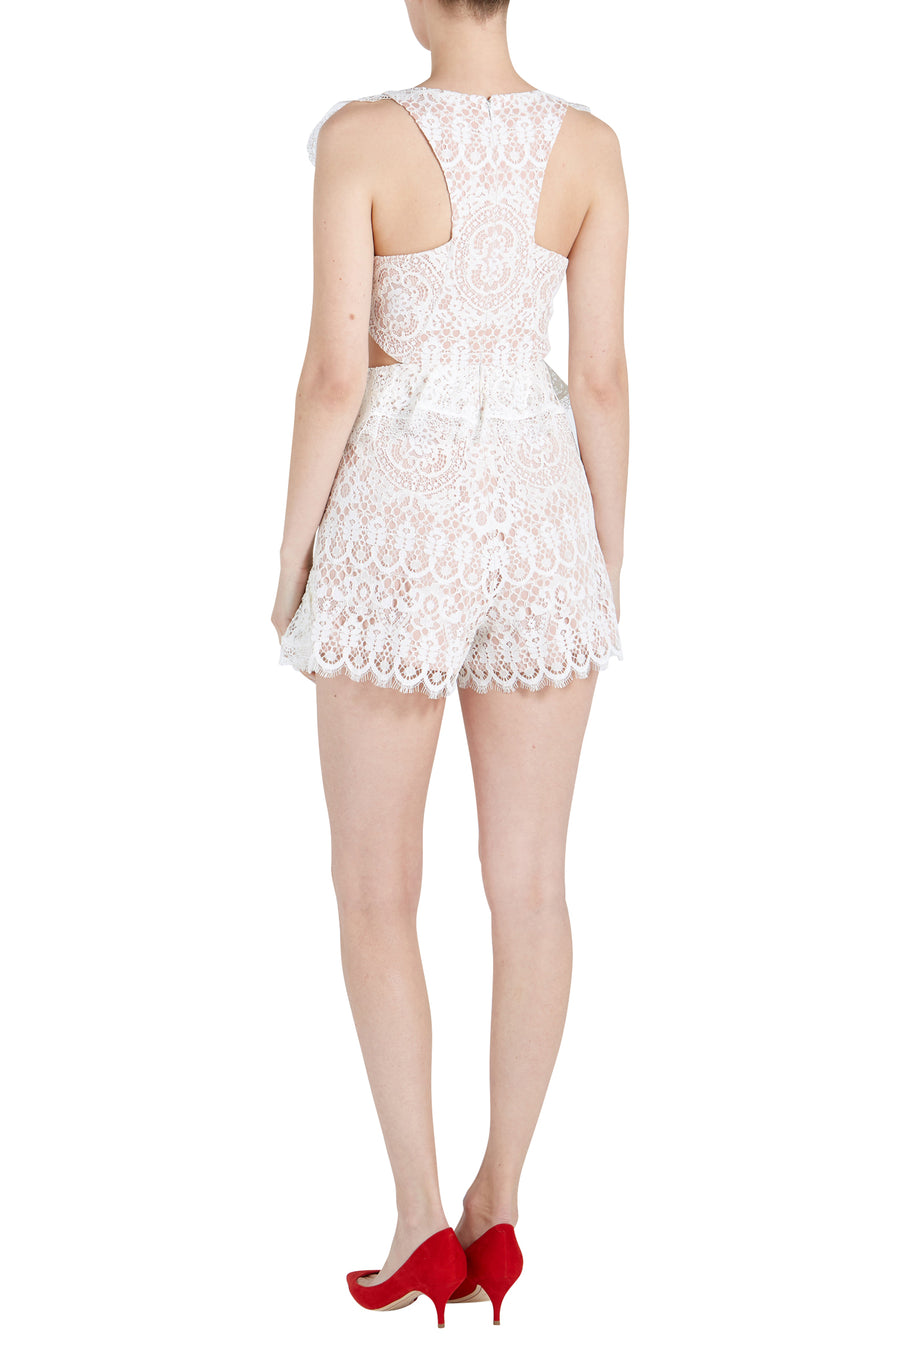 BAR LACE ROMPER